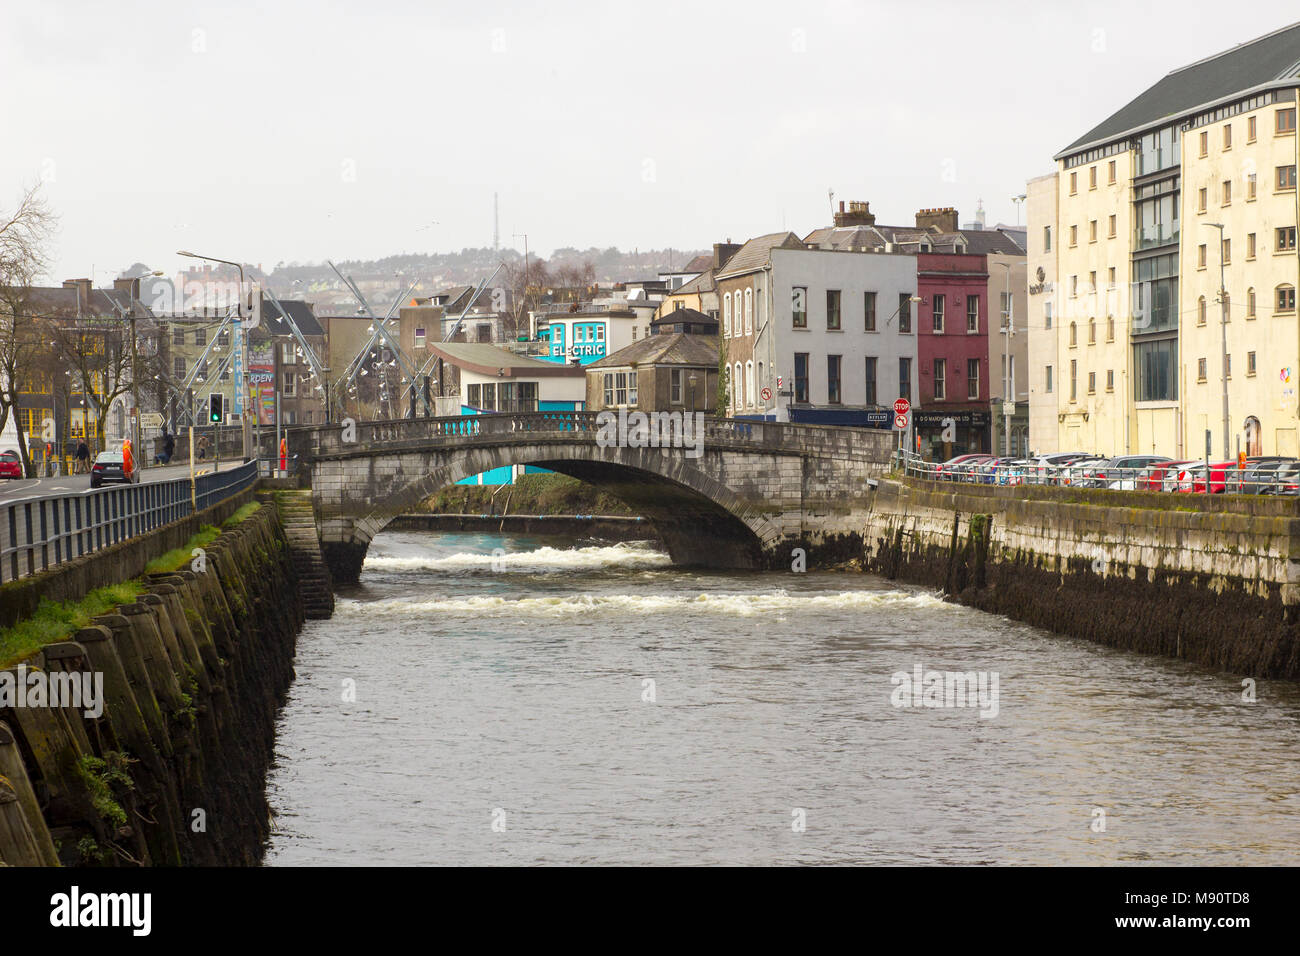 Parliament Bridge and the narrow streets of Cork Ireland on the Father Mathew Quay alongside the River Lee that runs through the city Stock Photo